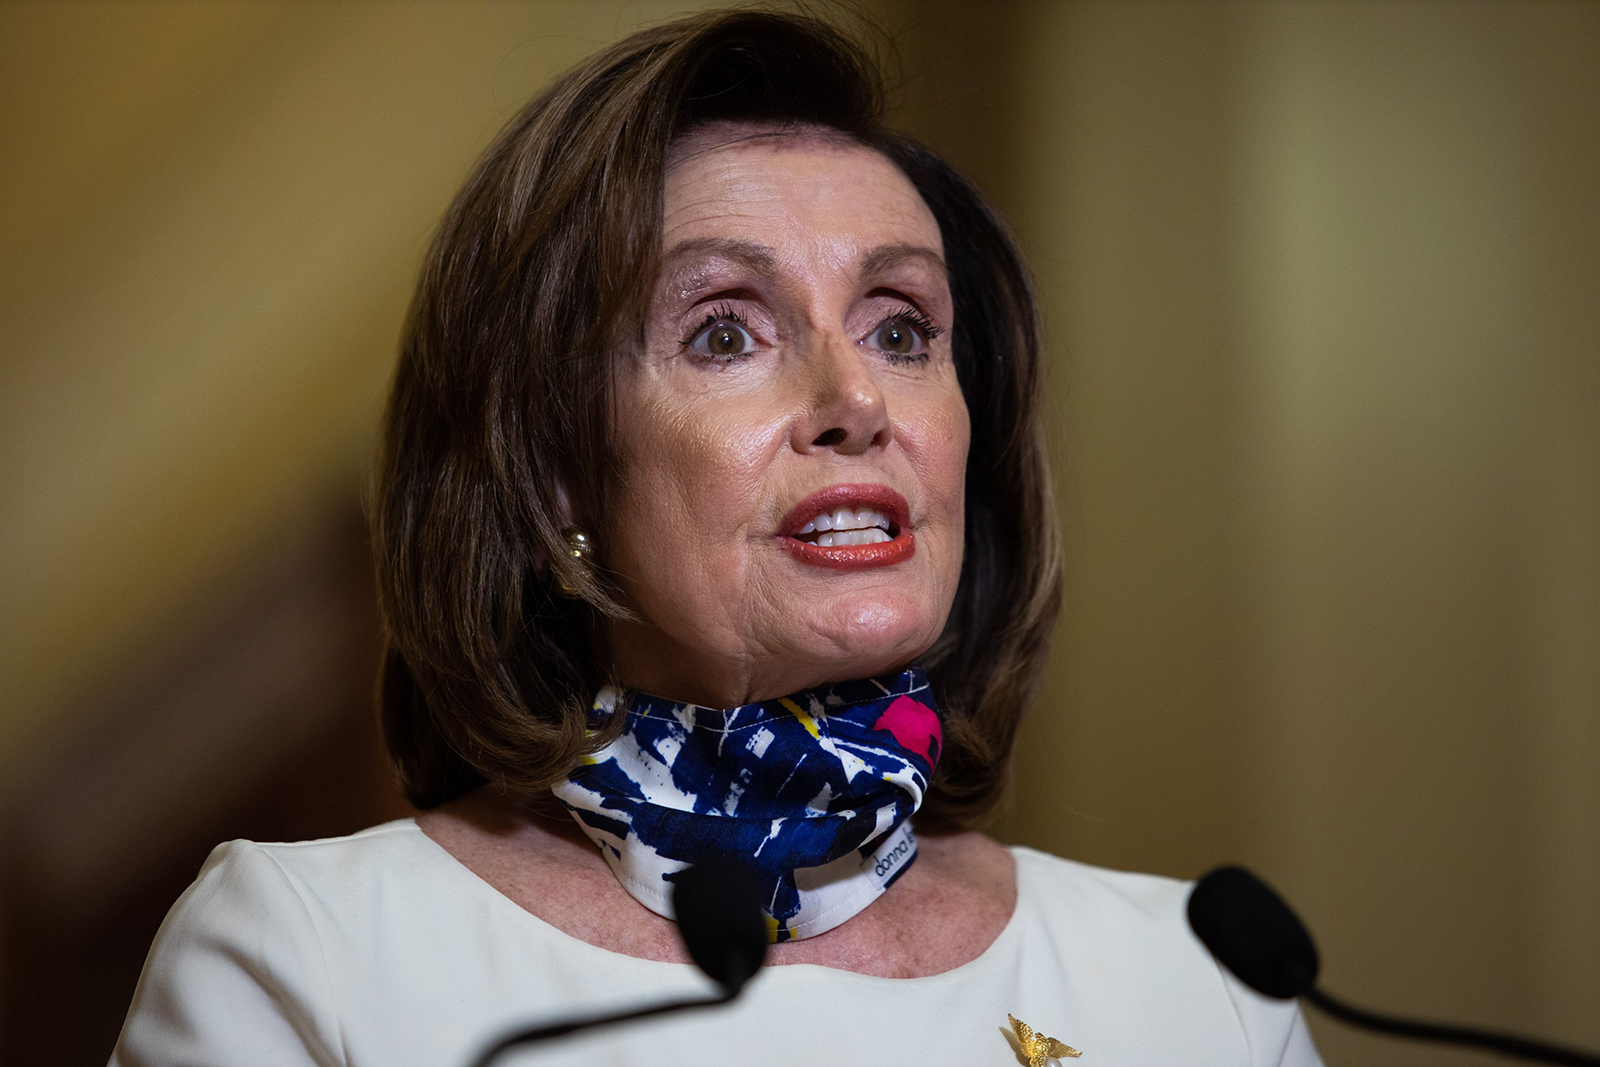 Speaker of the House Nancy Pelosi, arrives to speak at the US Capitol in Washington, DC on May 12.